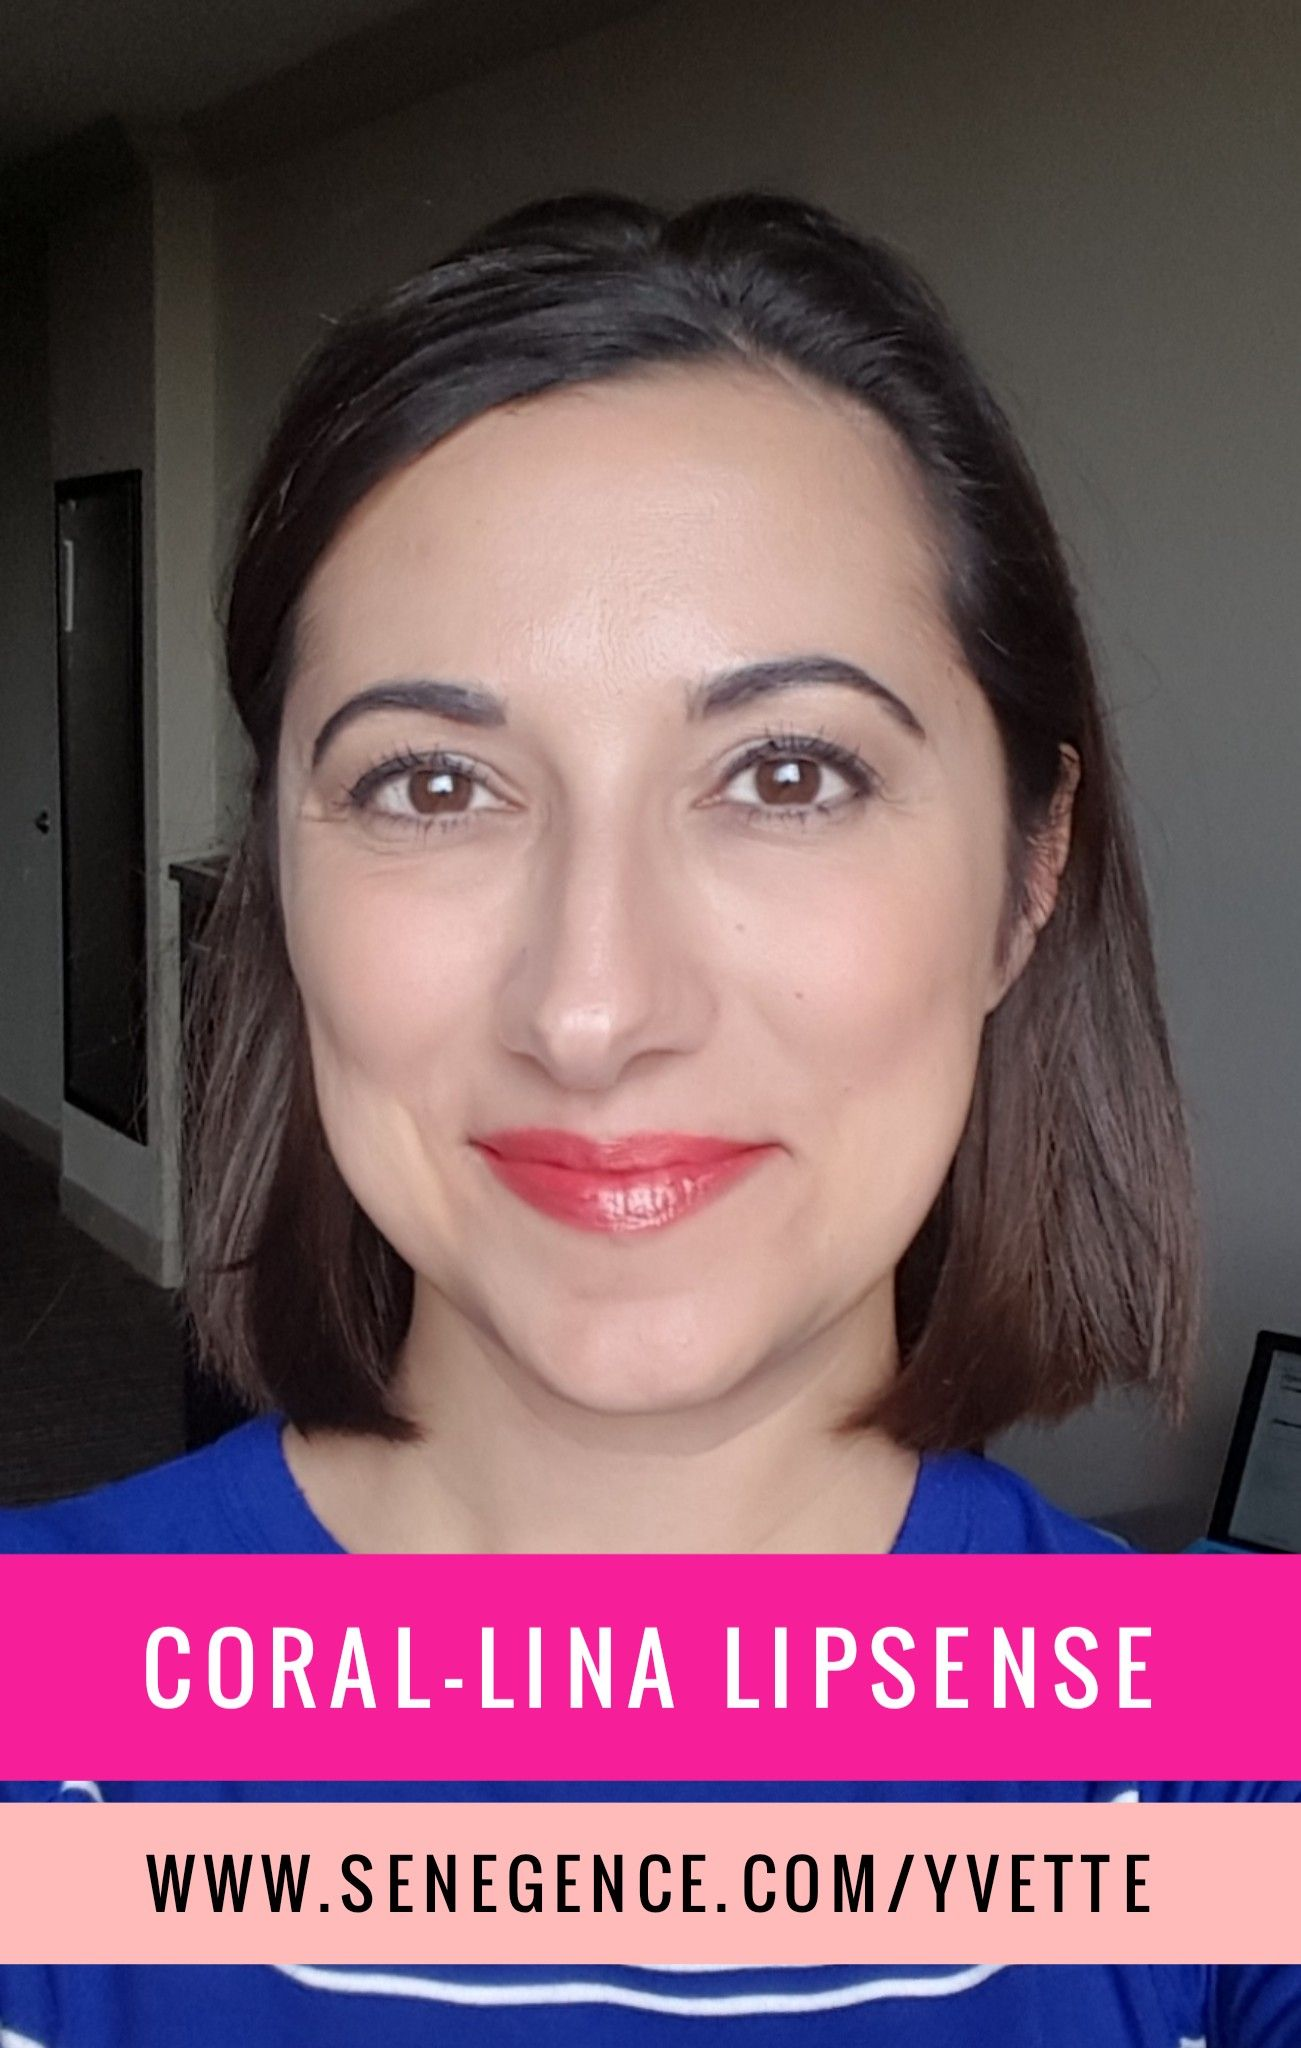 New Limited Edition Coral Lina Lipsense A Beautiful Coral Lip Color